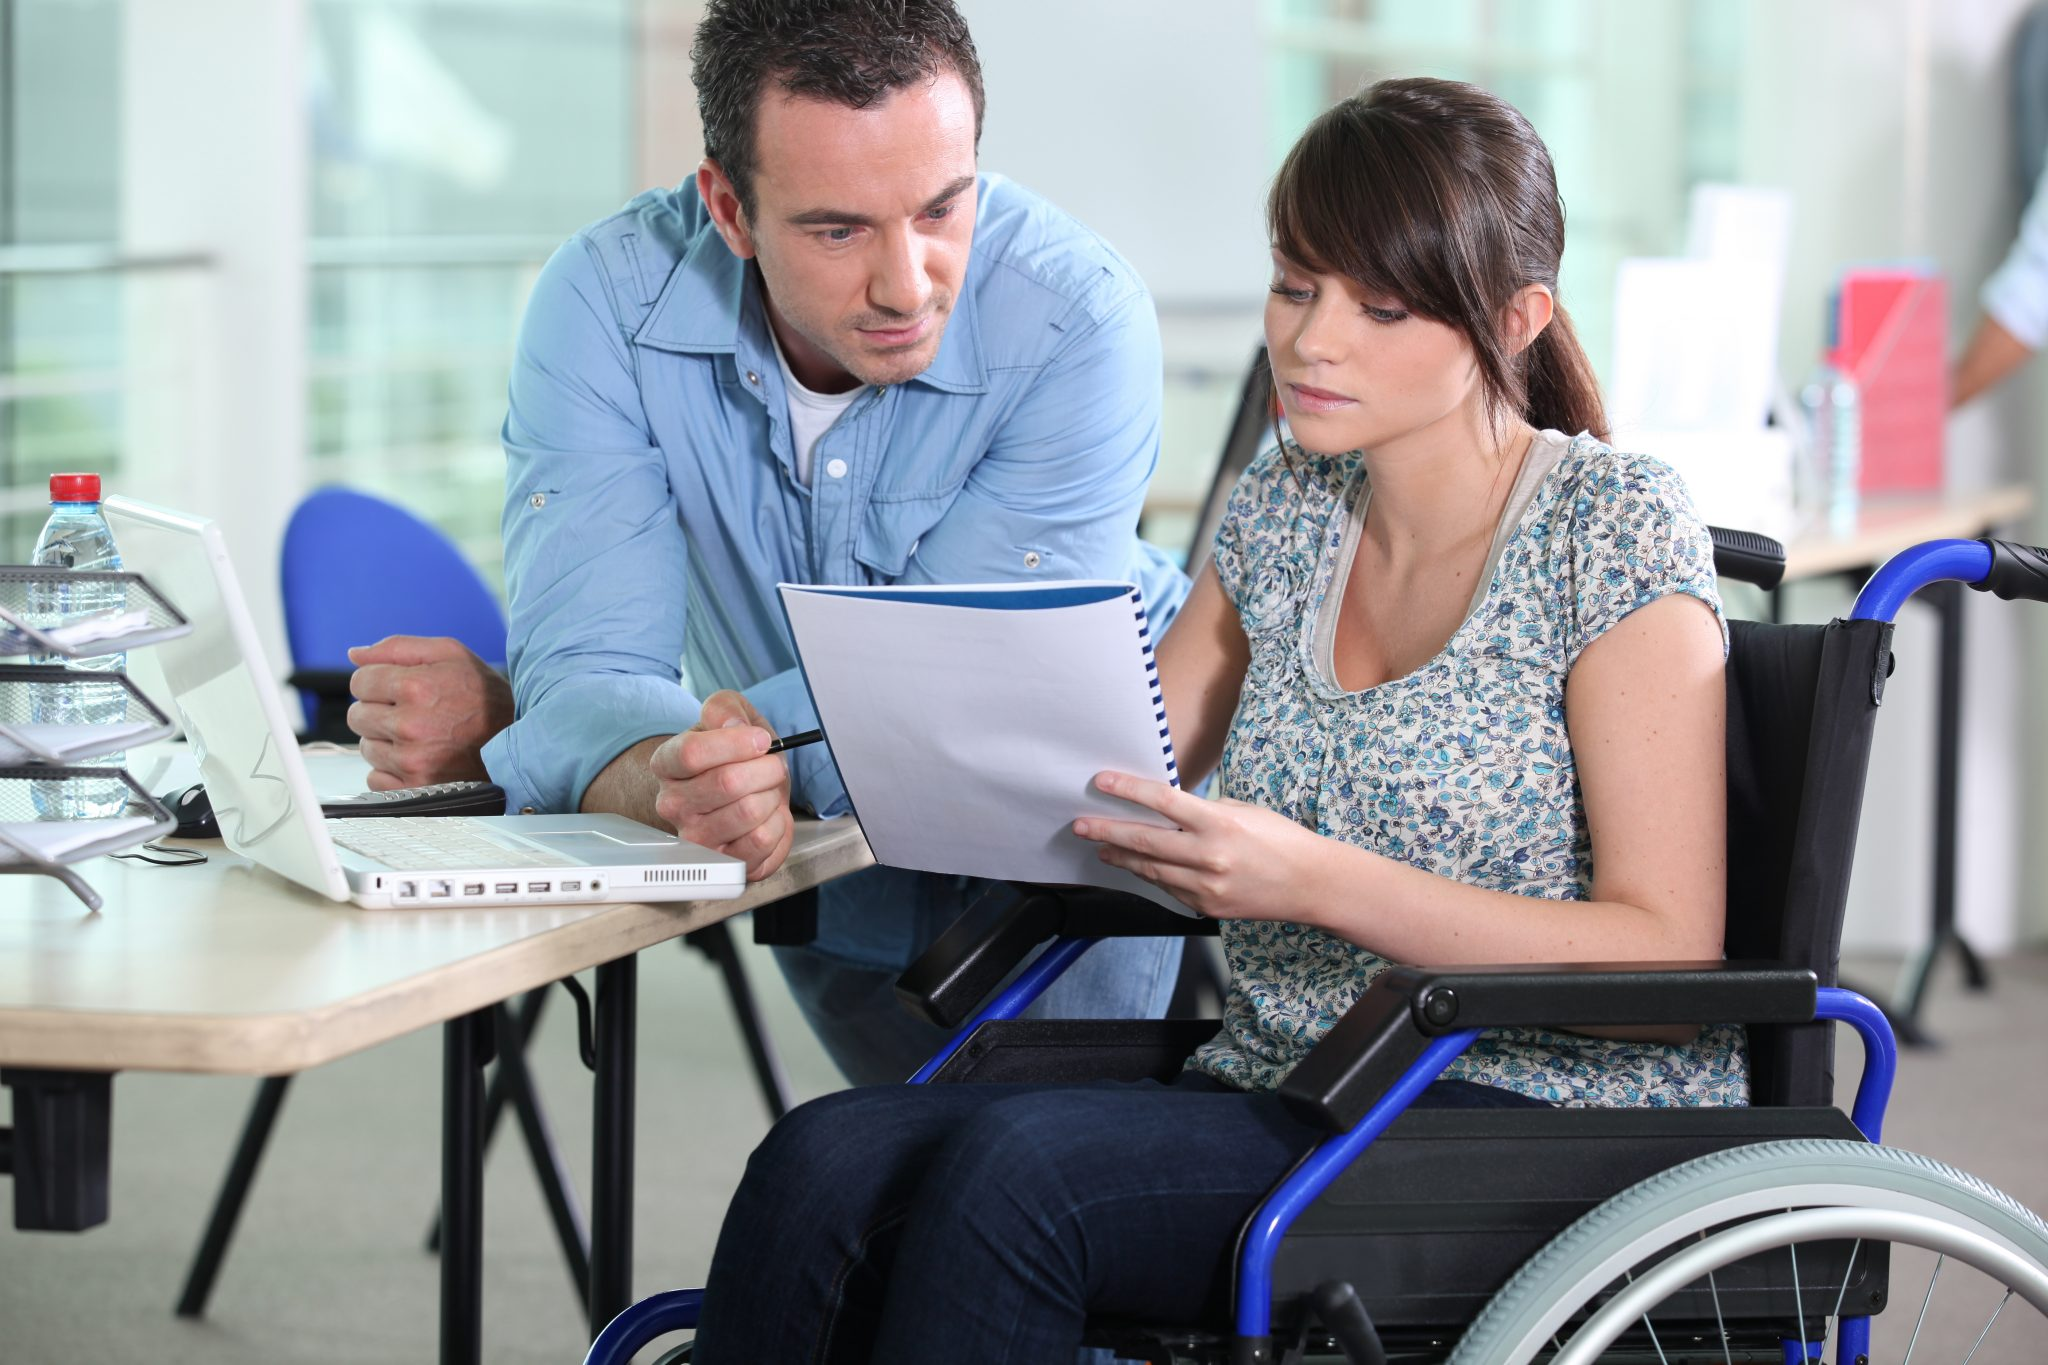 Spouses deciding on what accessibility services are right for them